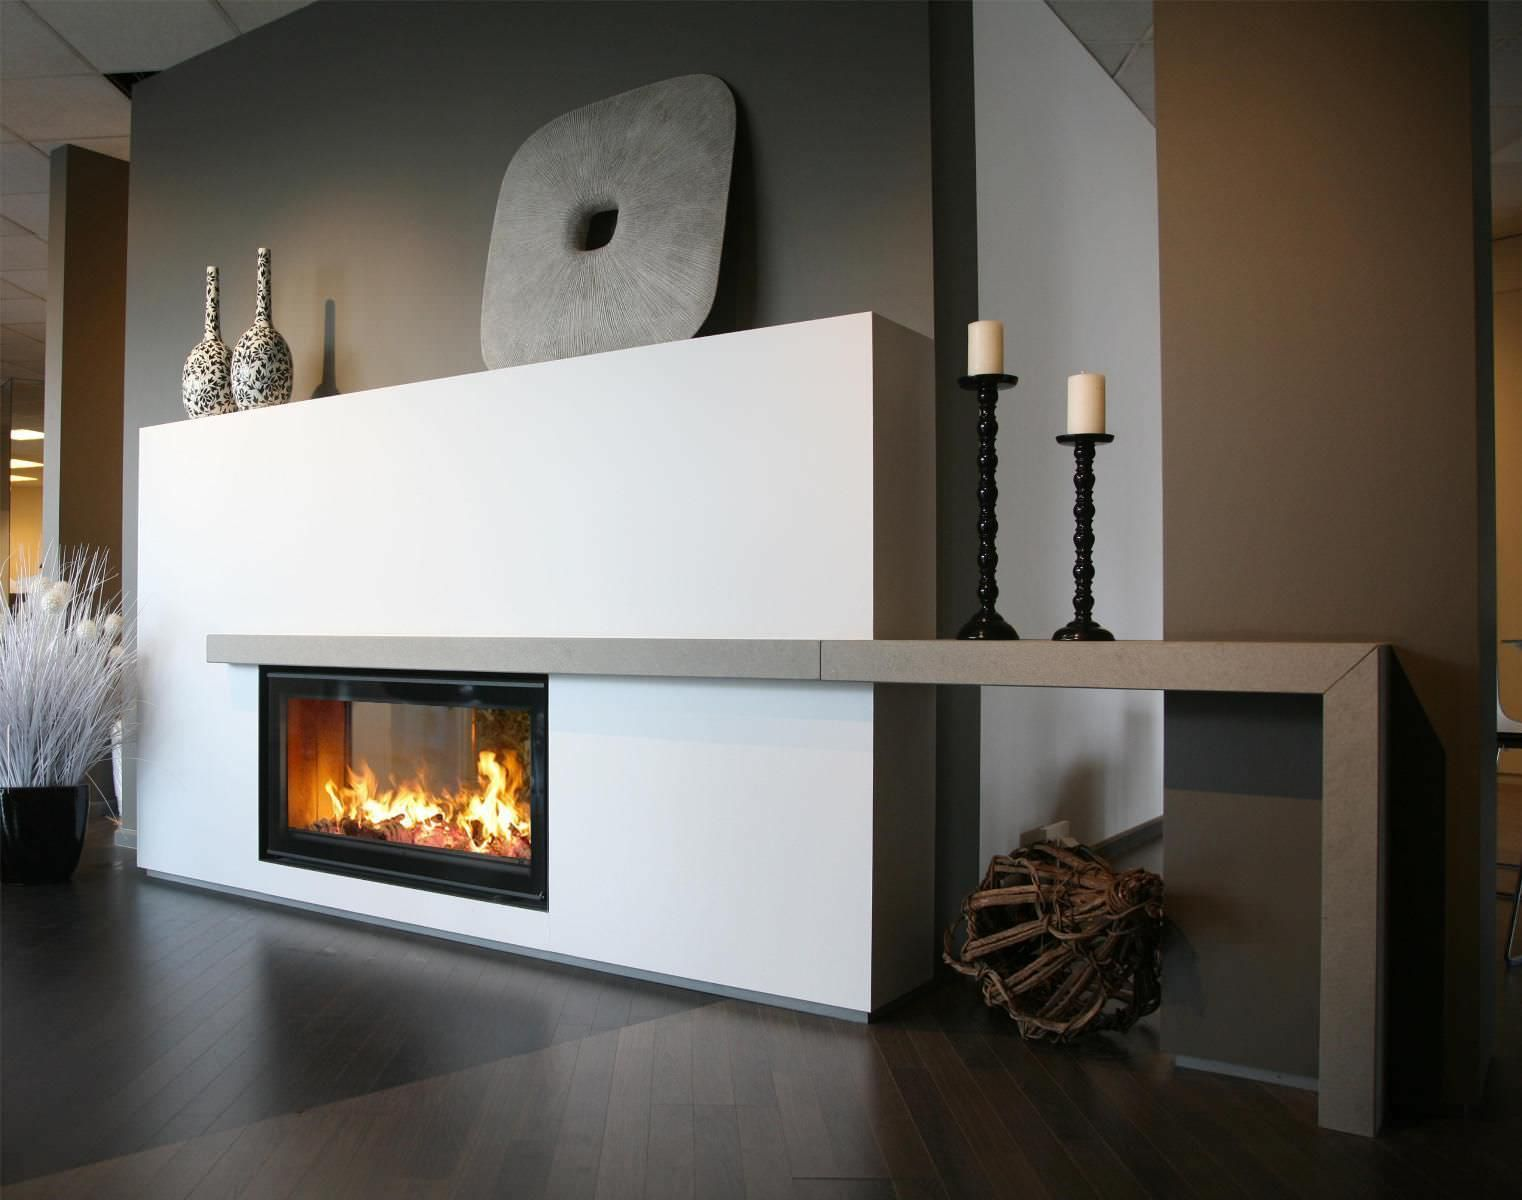 plain white double sided gas fireplace mantel design with. Black Bedroom Furniture Sets. Home Design Ideas